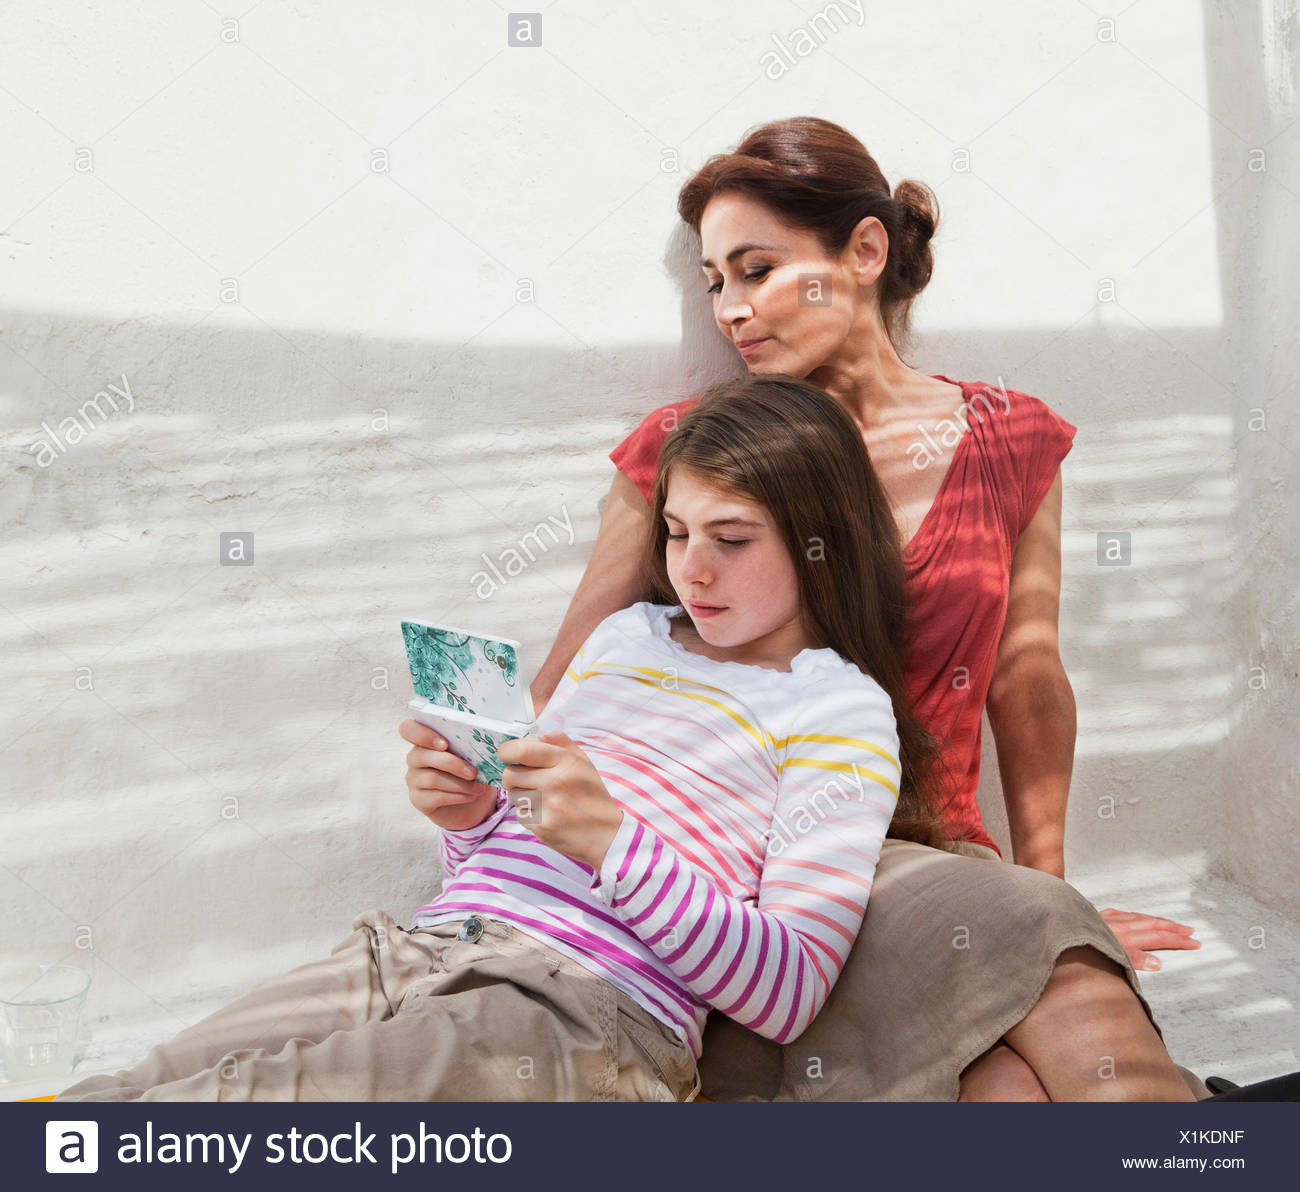 Mother and daughter with hand held device - Stock Image